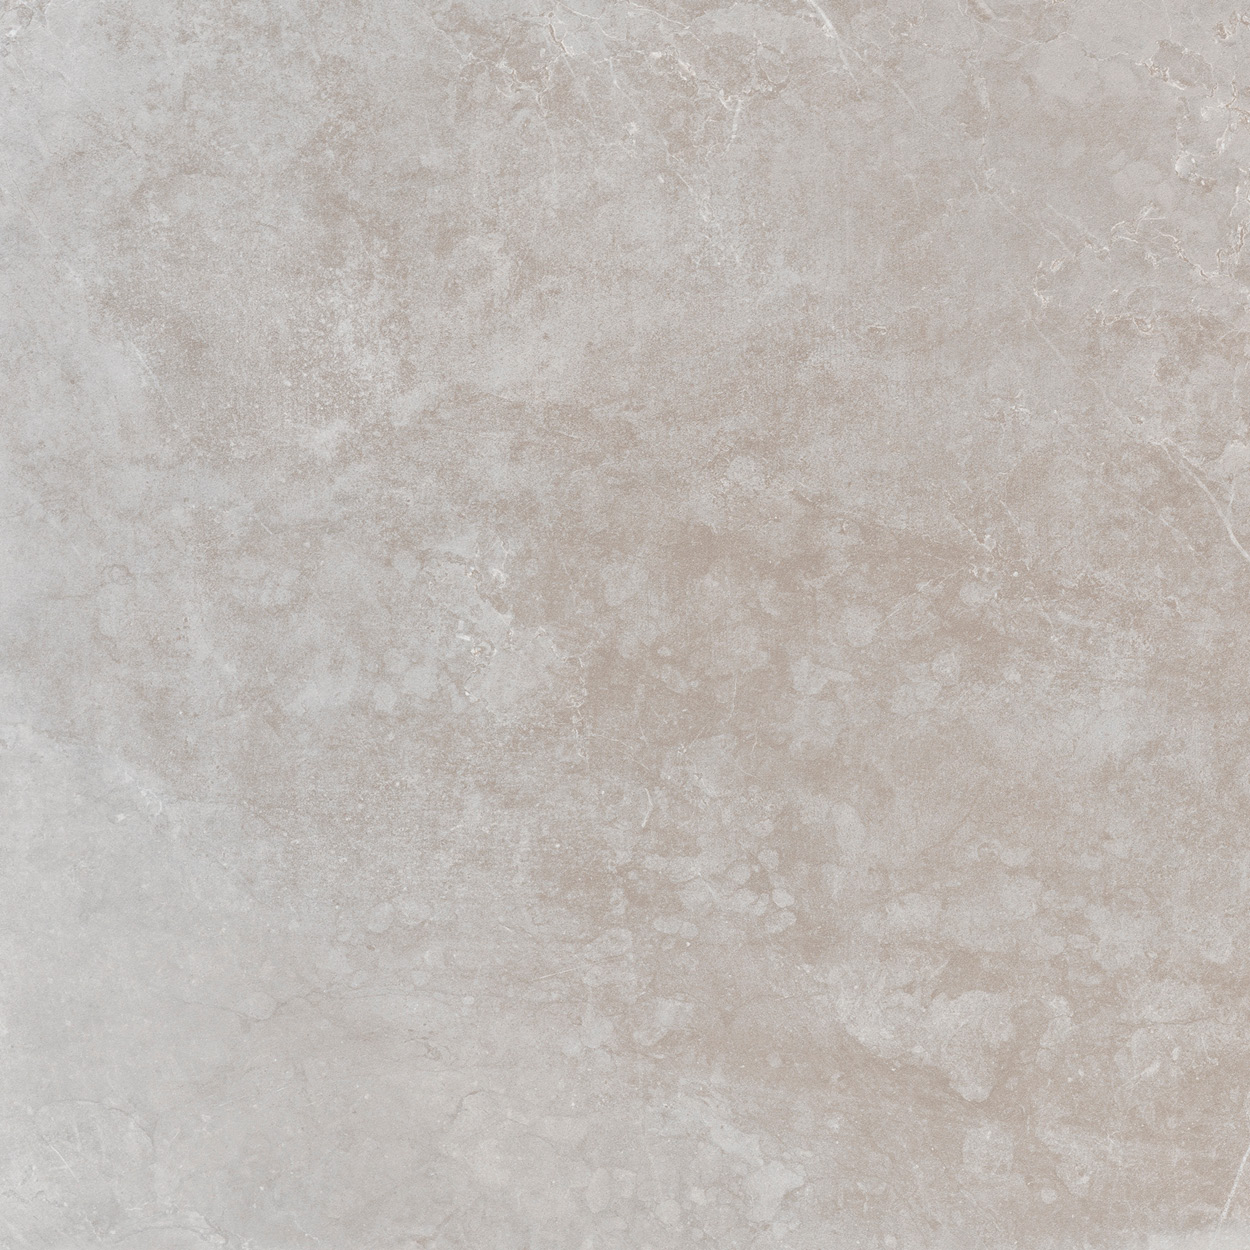 12 x 24 Evo Stone Mist Honed finished Rectified Porcelain Tile